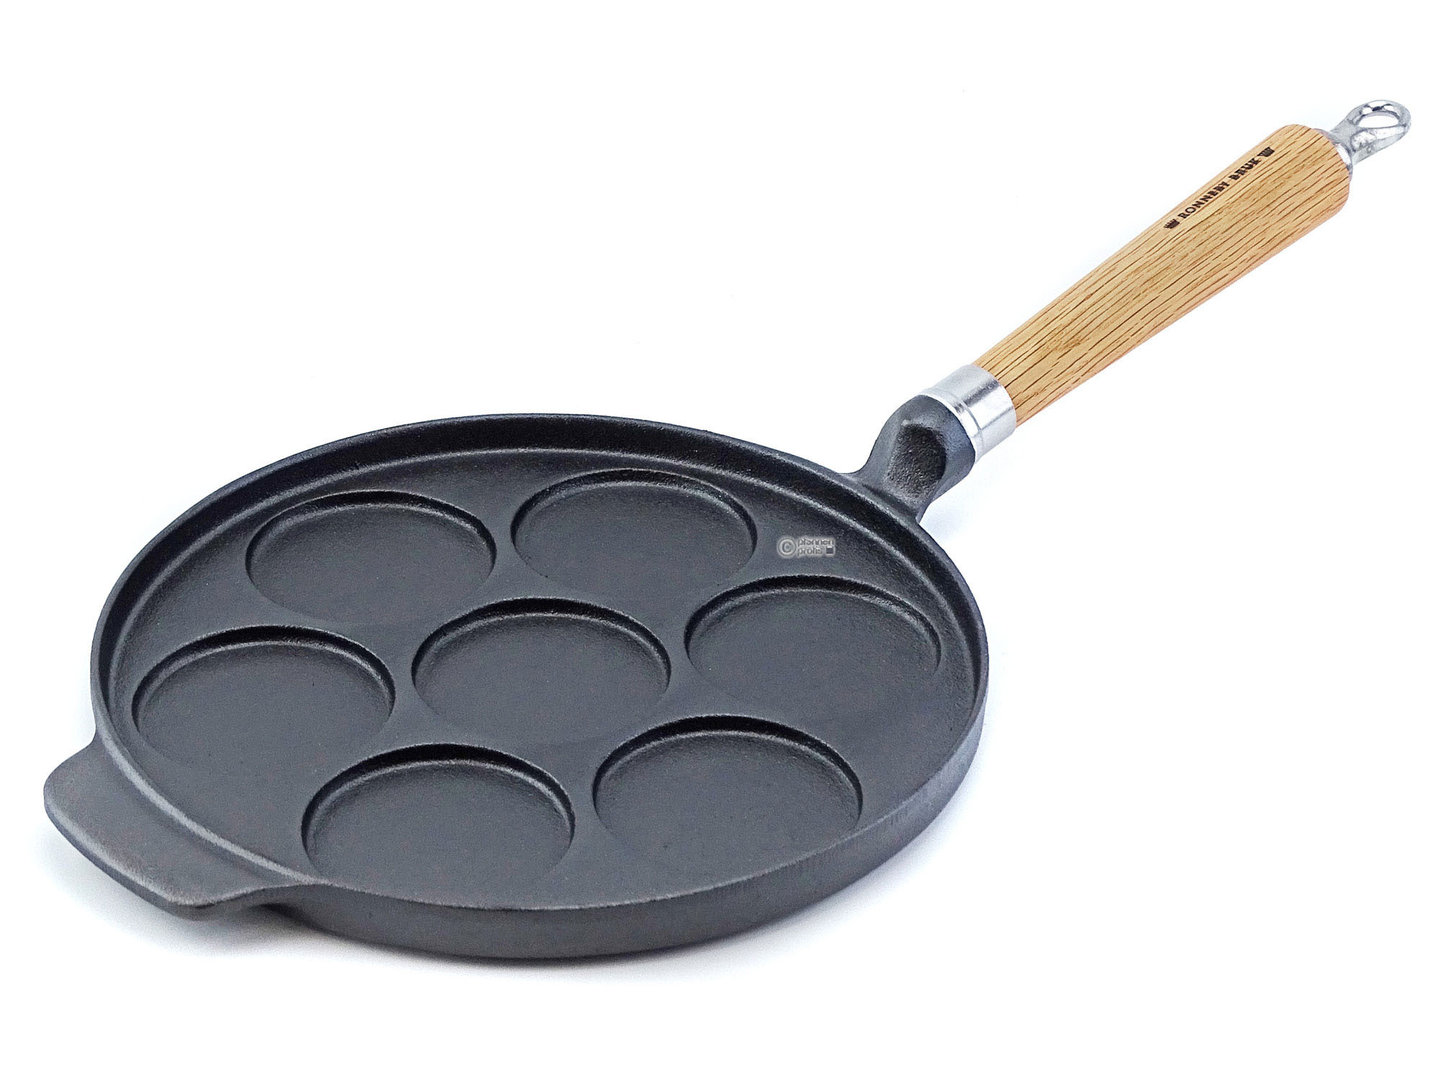 RONNEBY BRUK cast iron mini pancake pan MAESTRO 24 cm with 7 indentations oakwood handle